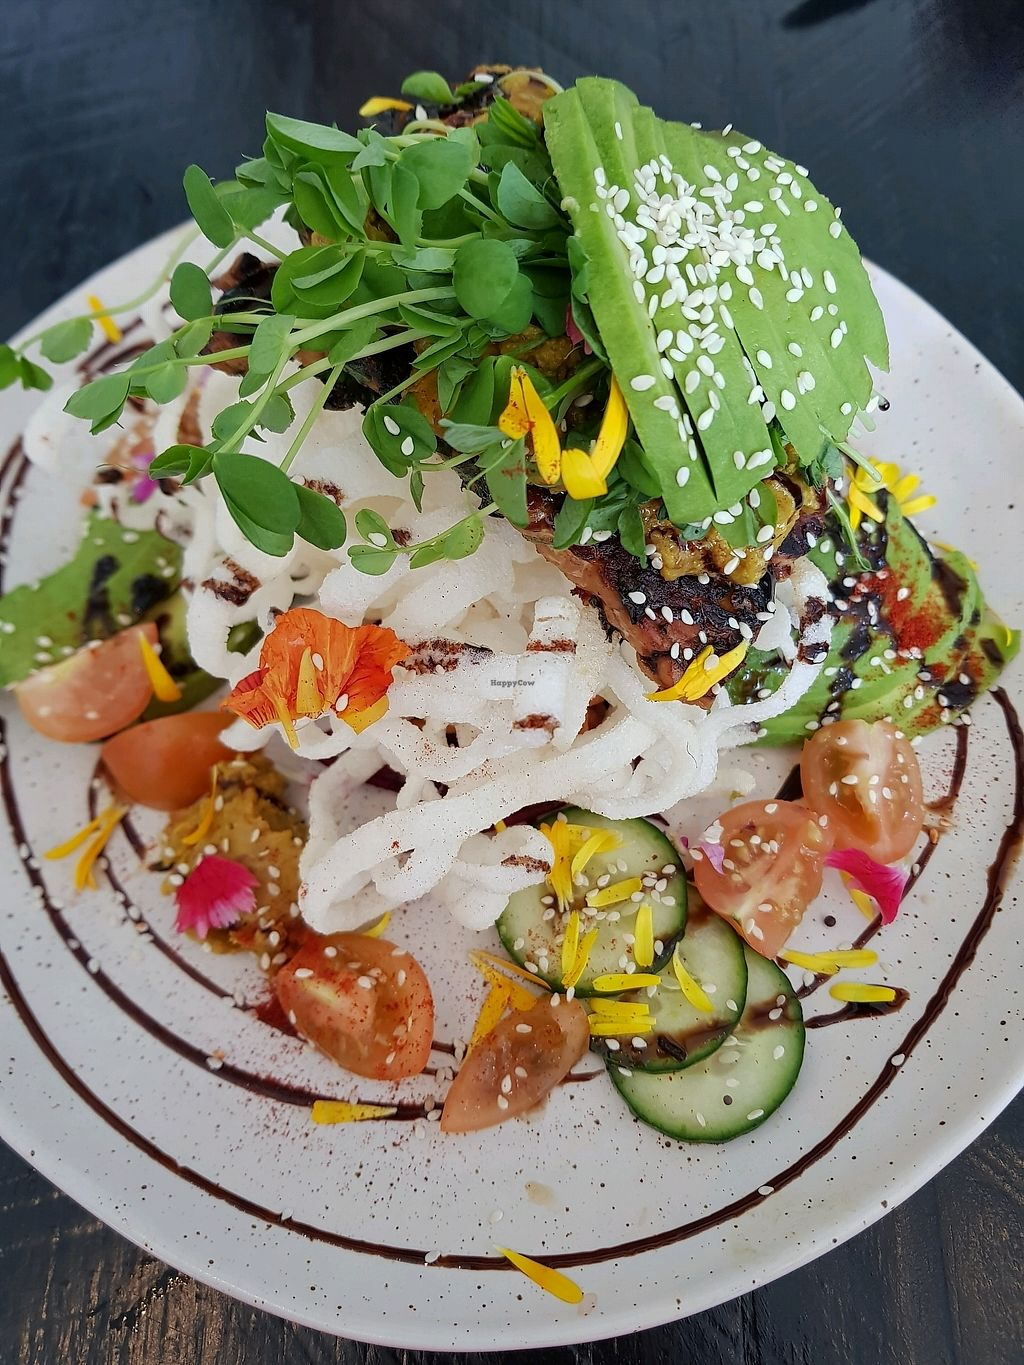 """Photo of Sozo Cafe  by <a href=""""/members/profile/MoniqueElouise"""">MoniqueElouise</a> <br/>Tempeh & rainbow salad with crispy rice noodles  <br/> October 8, 2017  - <a href='/contact/abuse/image/84435/313010'>Report</a>"""